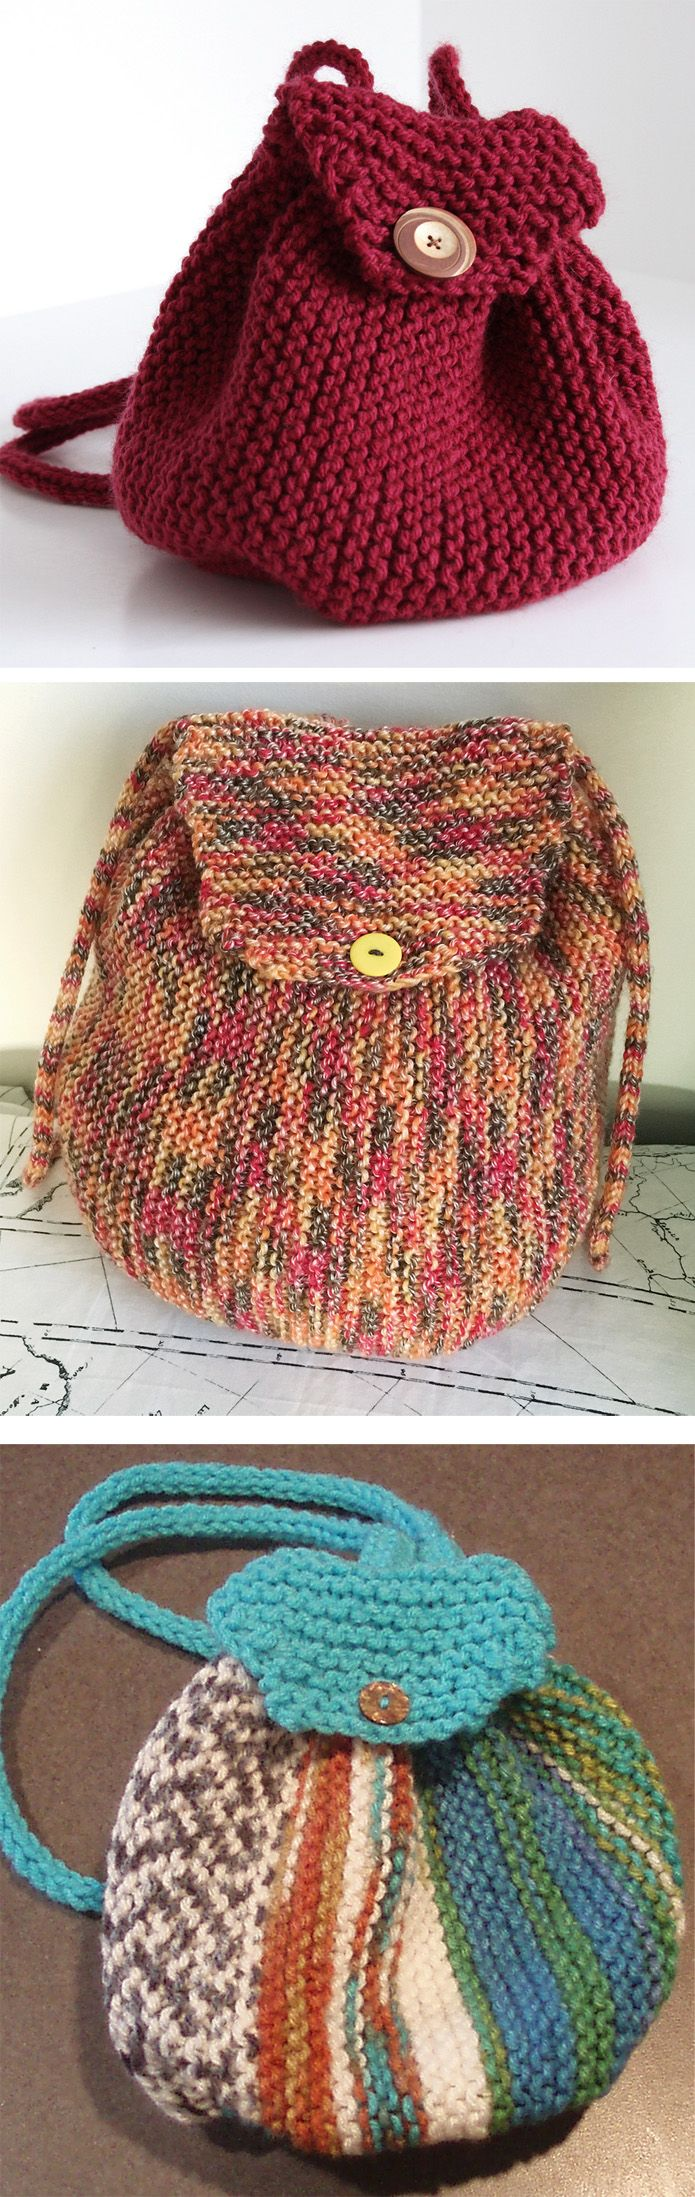 Free Knitting Pattern for Easy Garter Stitch Backpack - Drawstring ...